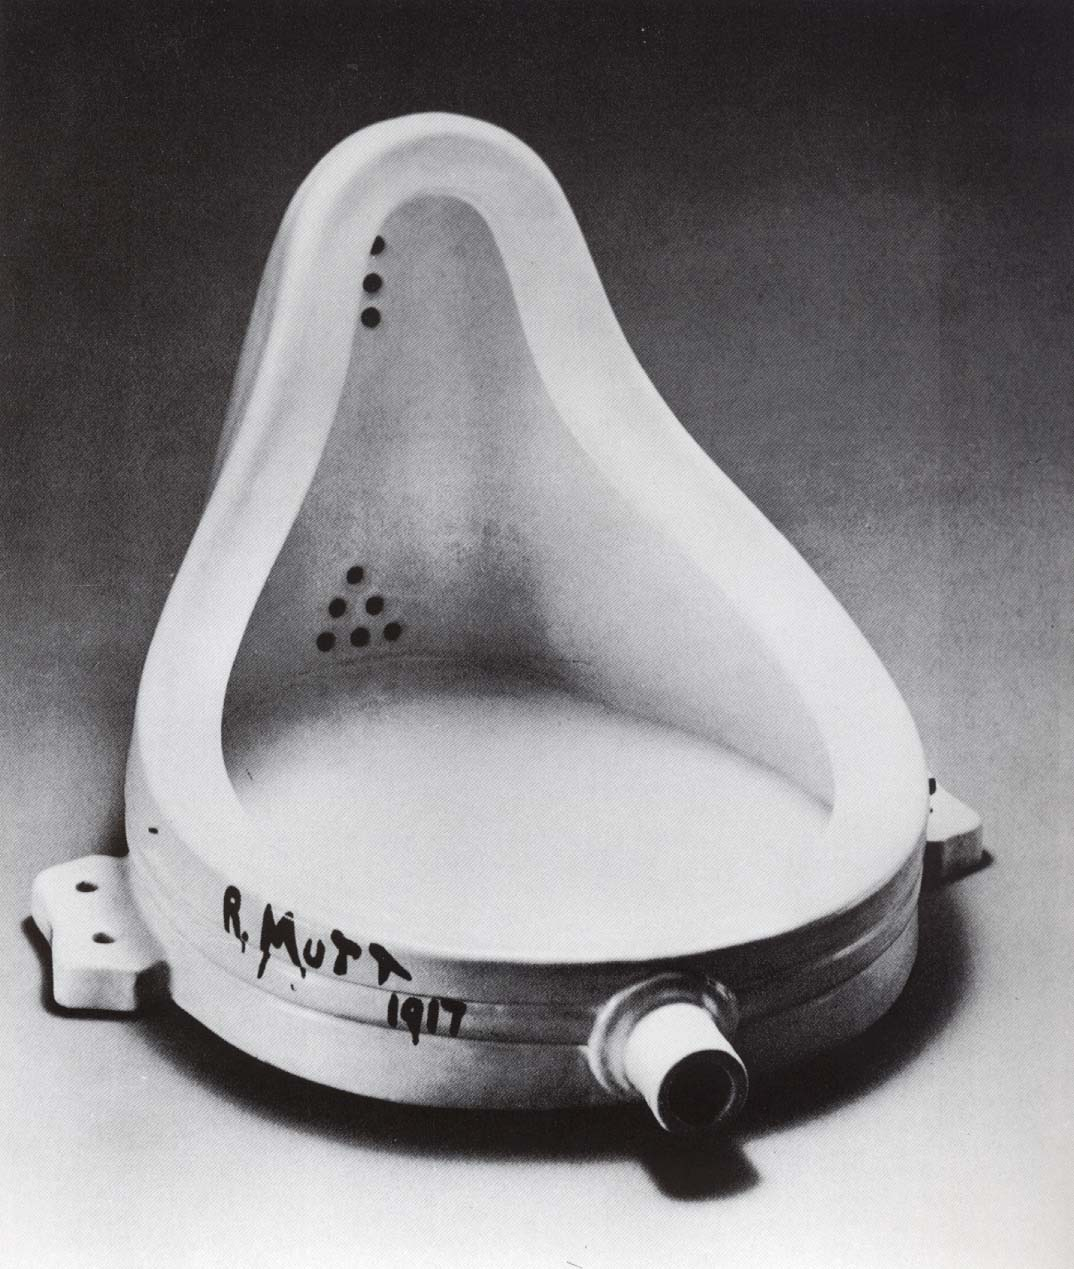 http://kakaos.files.wordpress.com/2008/07/duchamp1.jpg